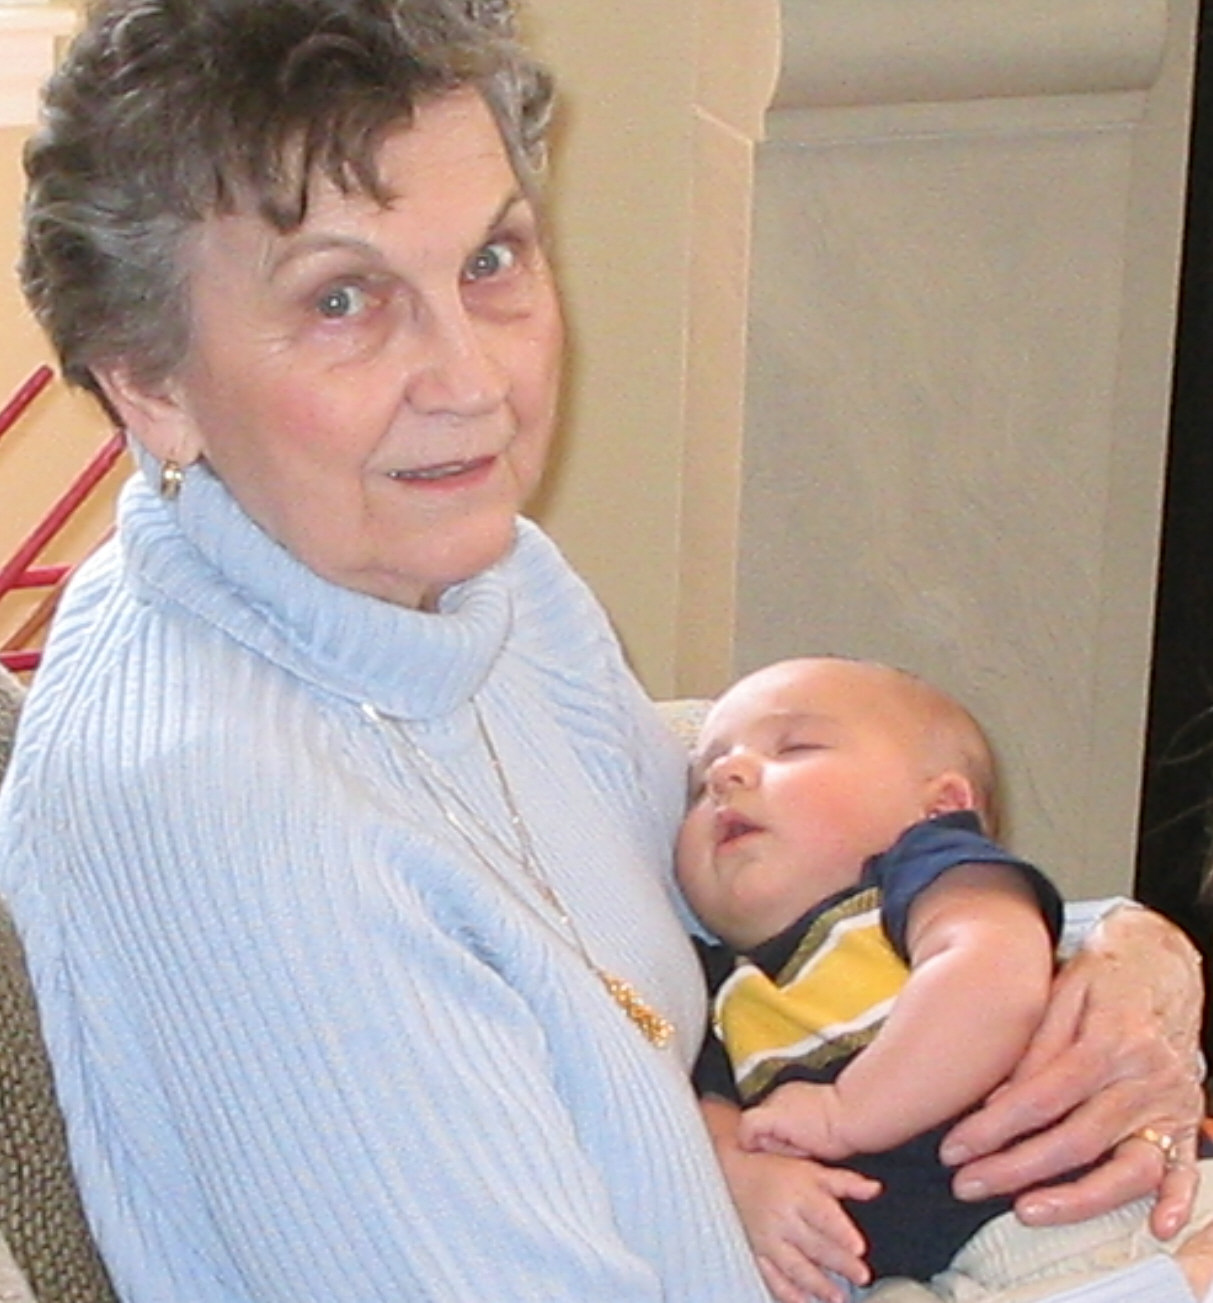 GREAT-GRANDMA LAVONE HOLLIS AND GREAT-GRANDBABY KJ LOREY